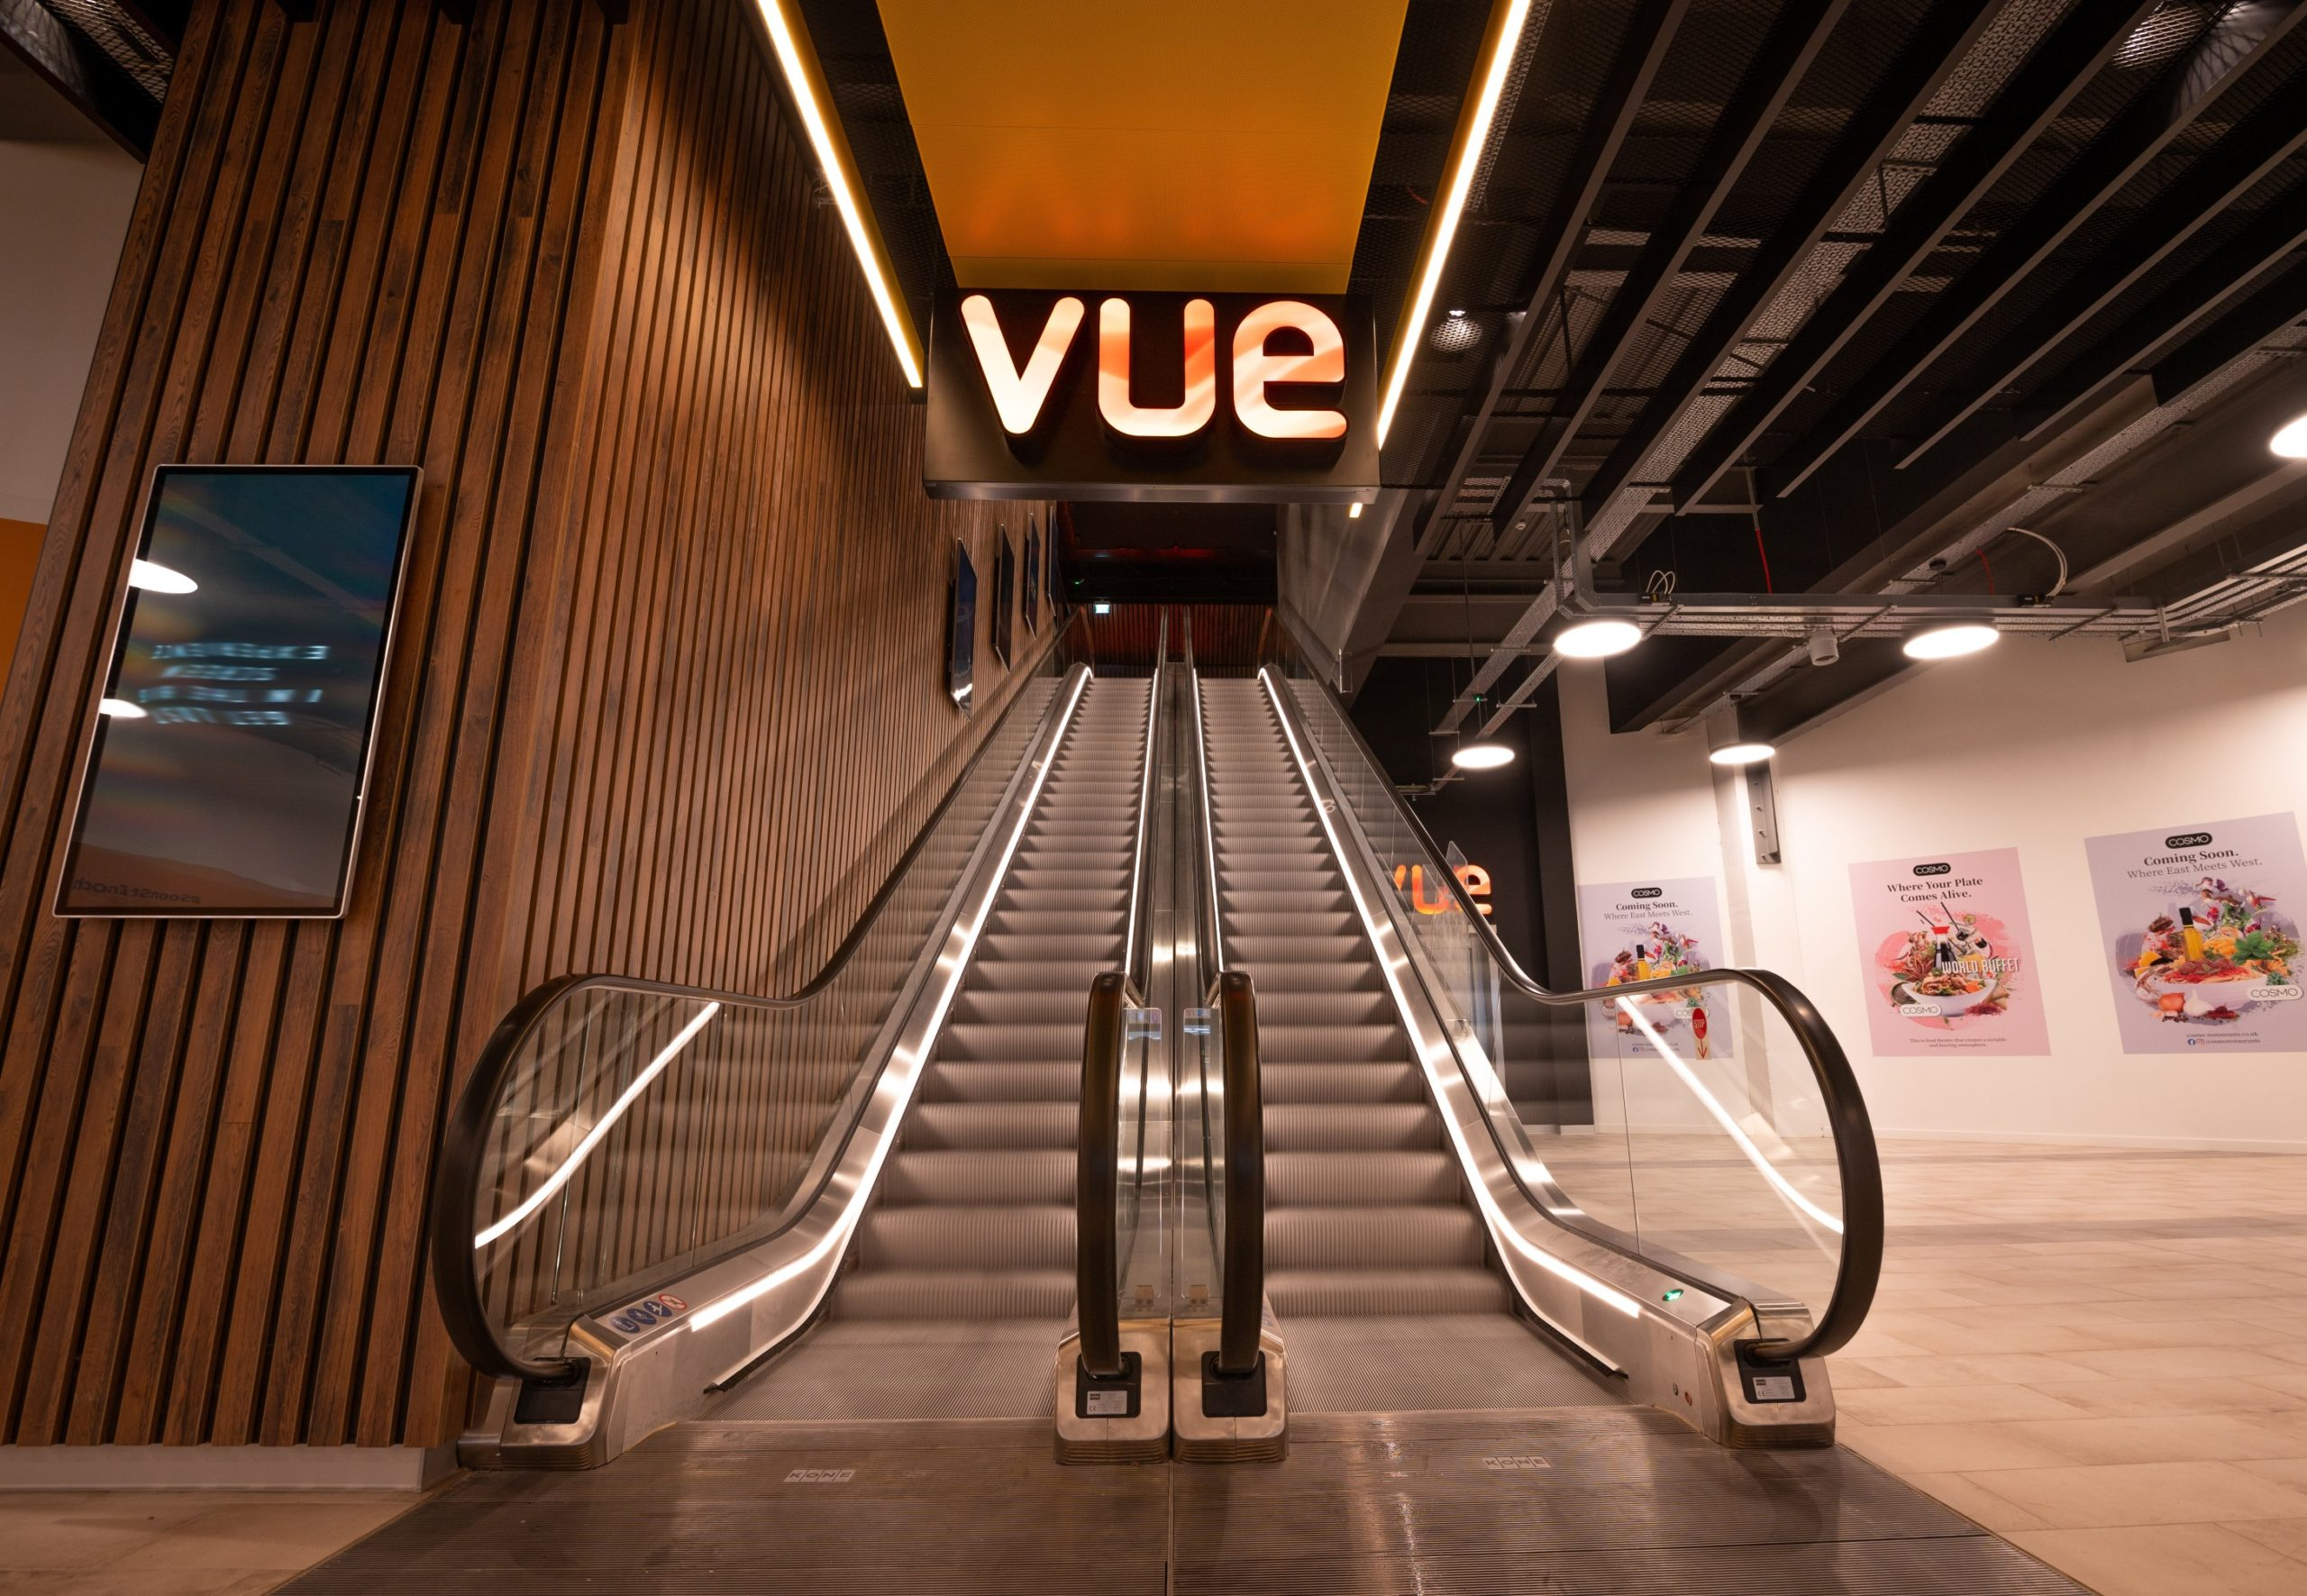 Vue set to open on 17 May